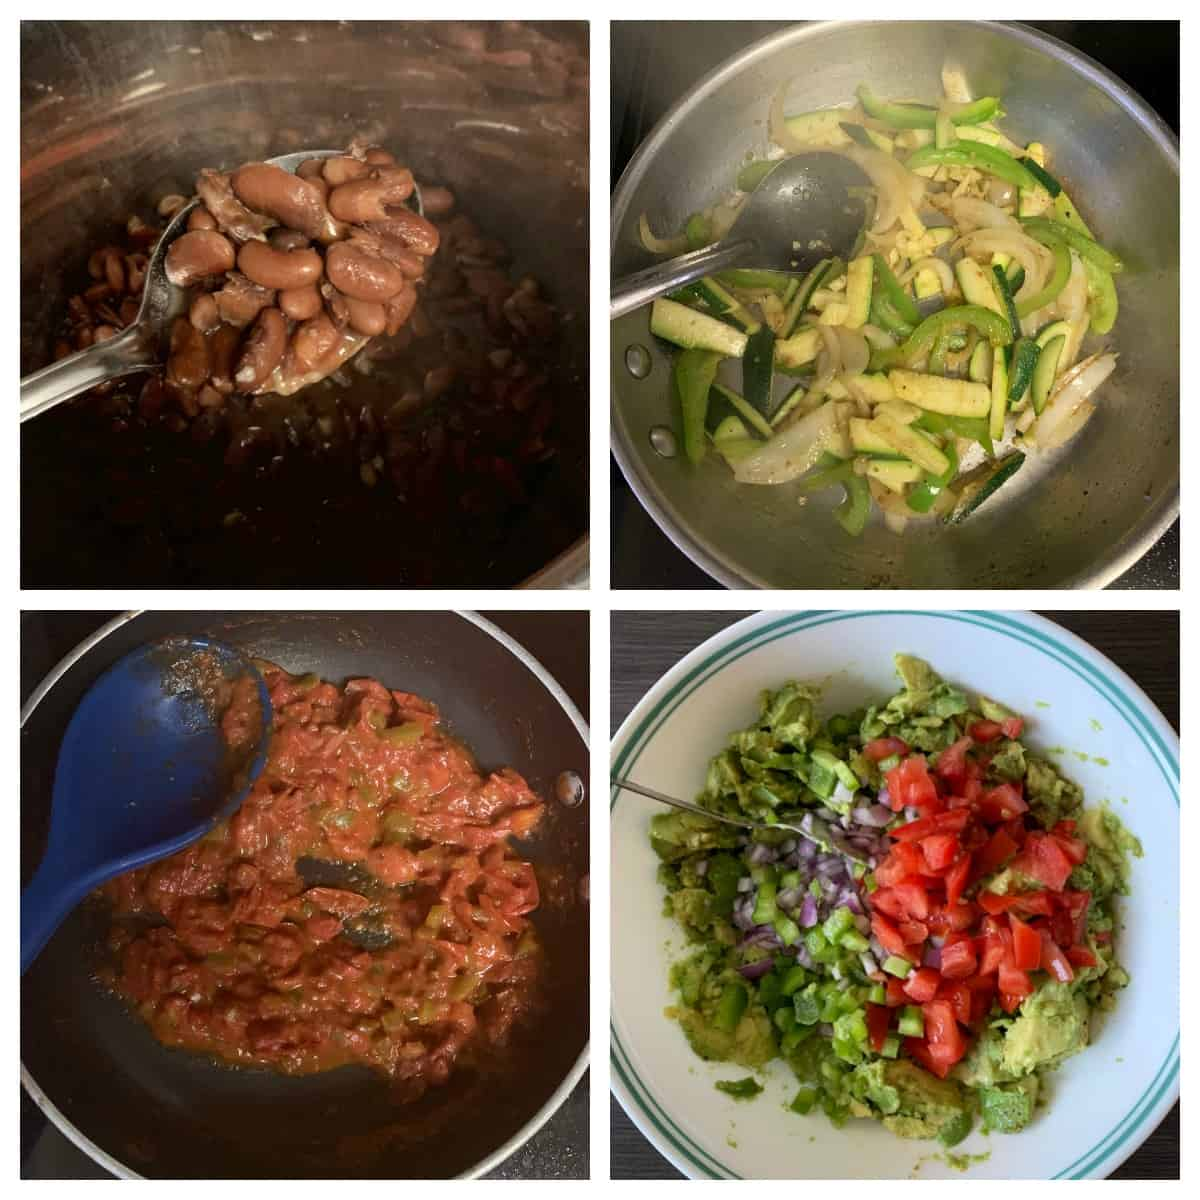 Making of Kidney beans, salsa, fajita and guacamole.